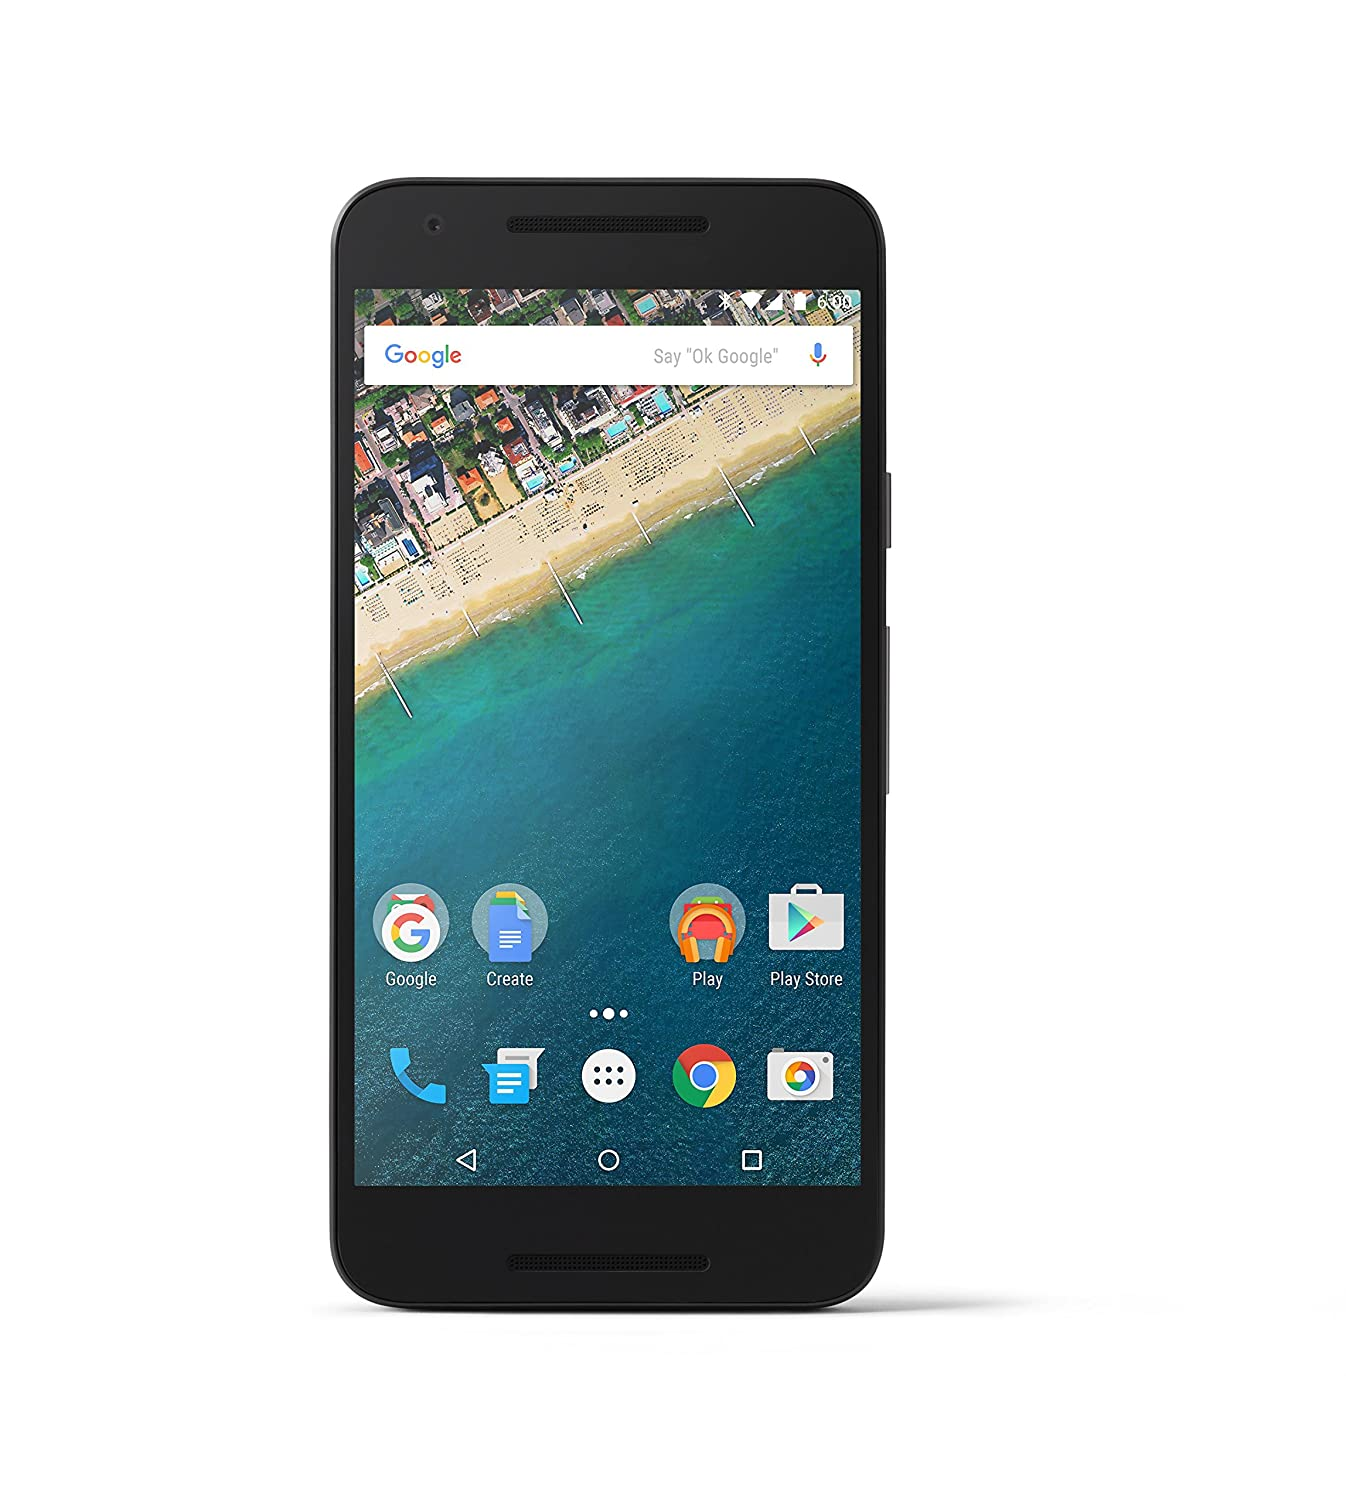 LG Nexus 5X Unlocked Smartphone - Black 32GB (US Warranty)